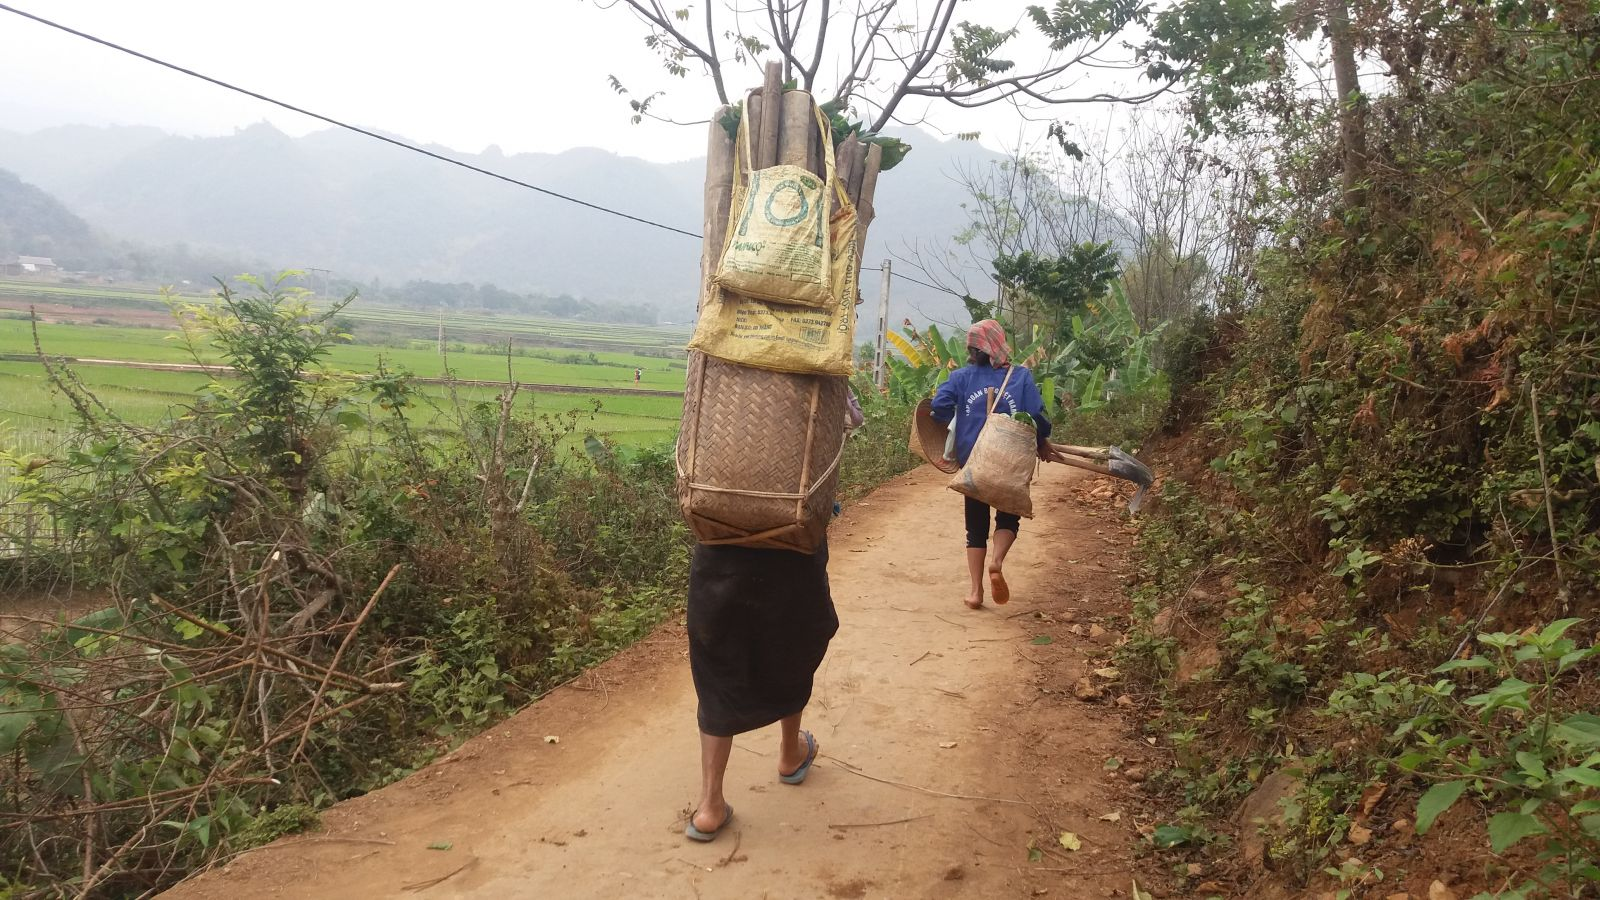 Tour in Mai Chau- local transport basket